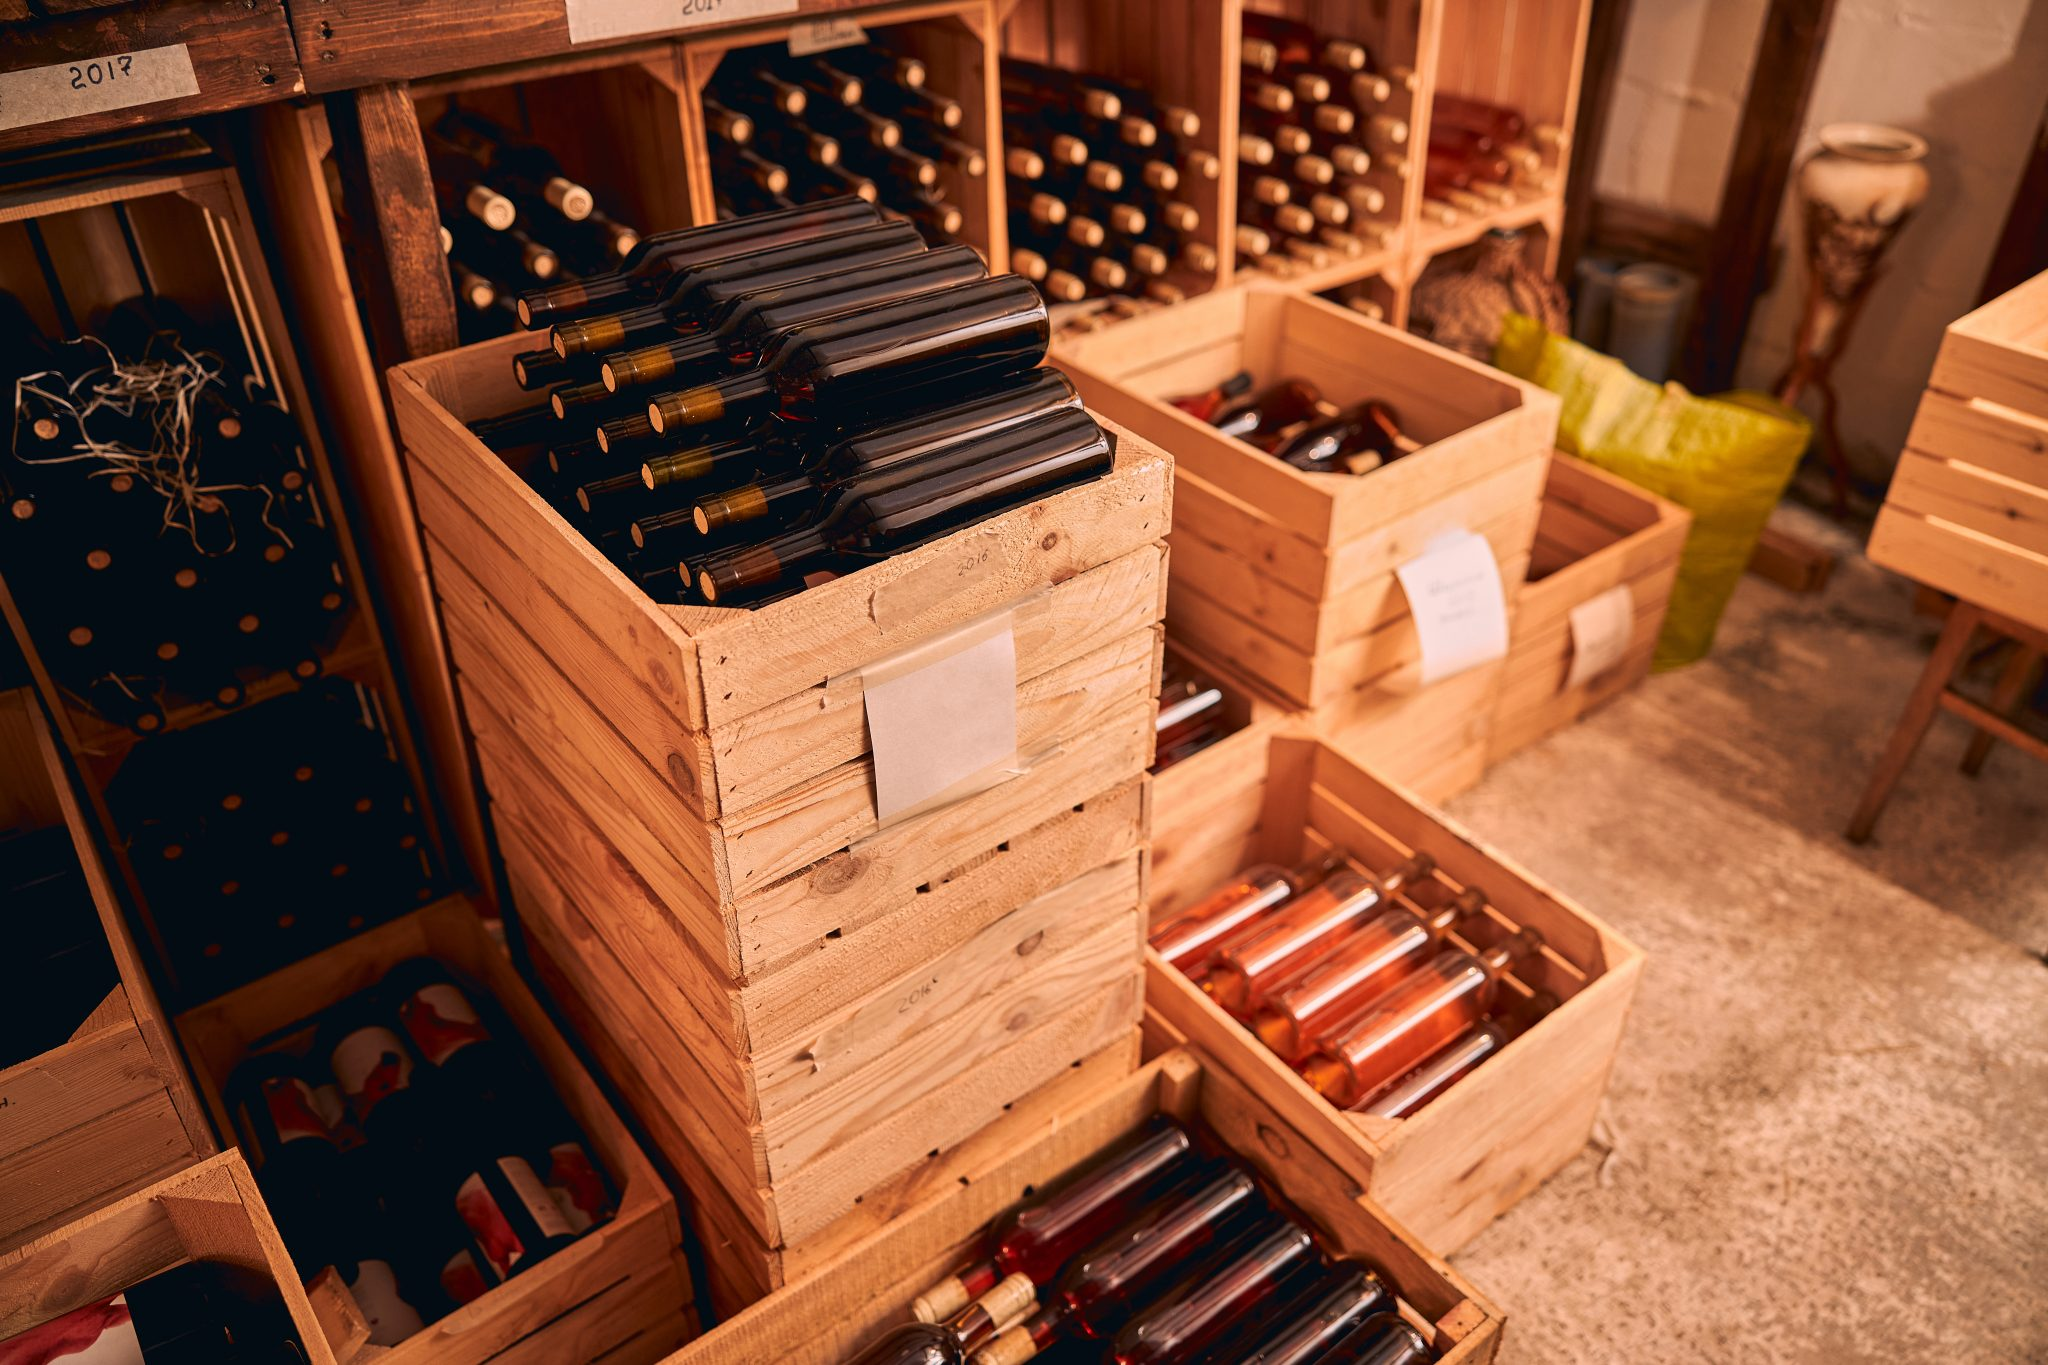 Importing Alcohol with the Alcohol and Tobacco Tax and Trade Bureau